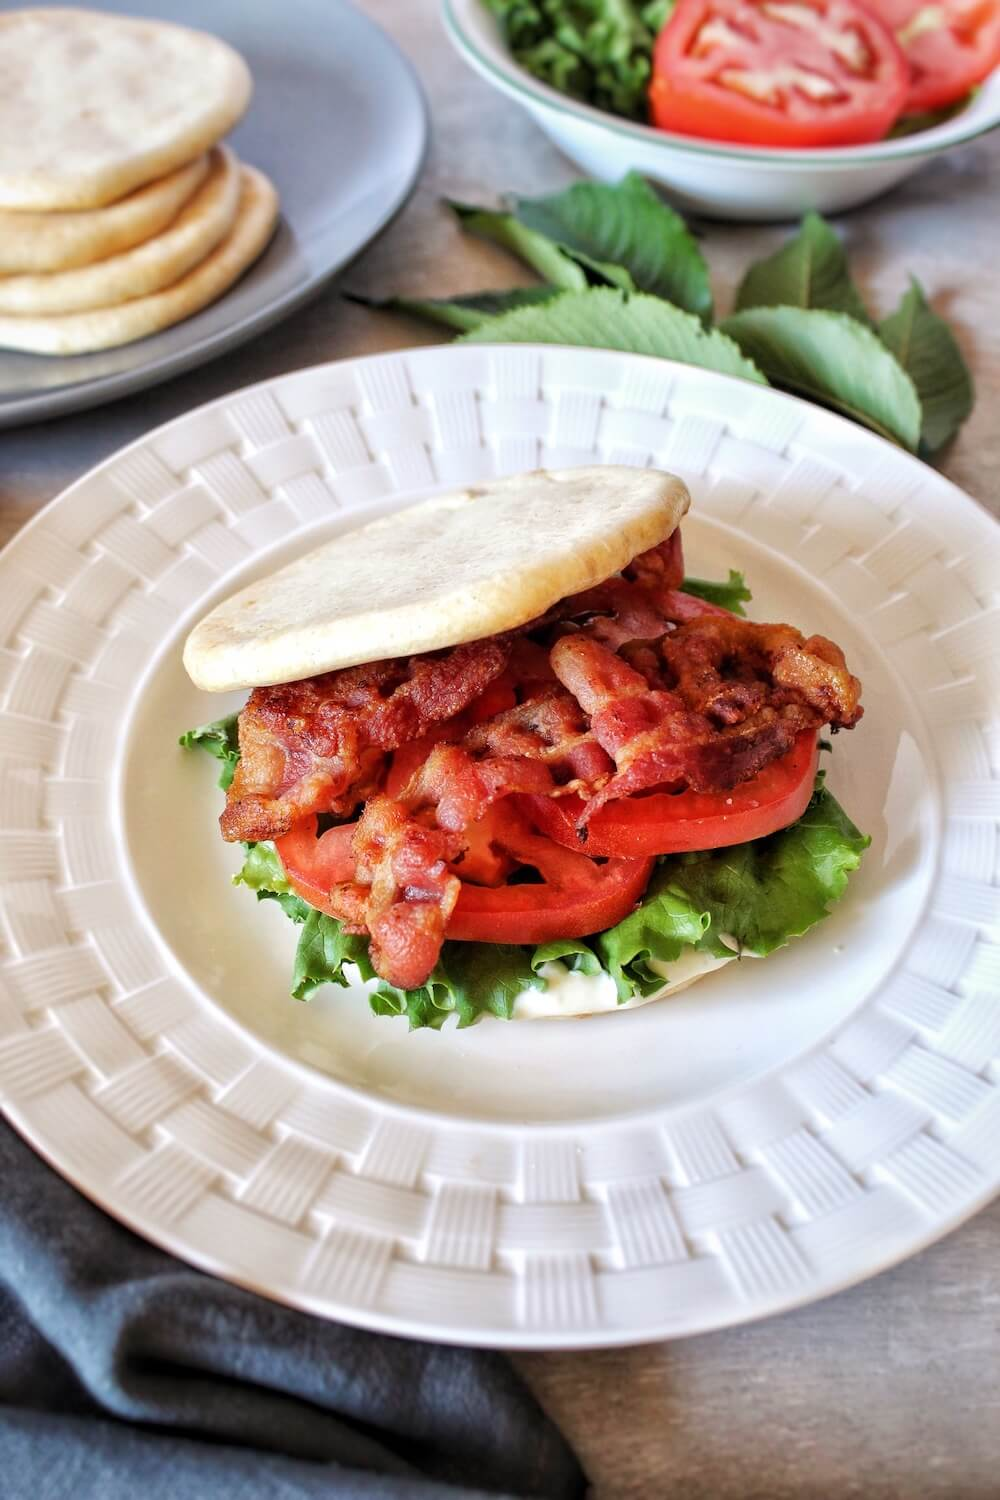 This Keto Classic BLT Sandwich recipe is simple and delicious and sure to make your mouth water.